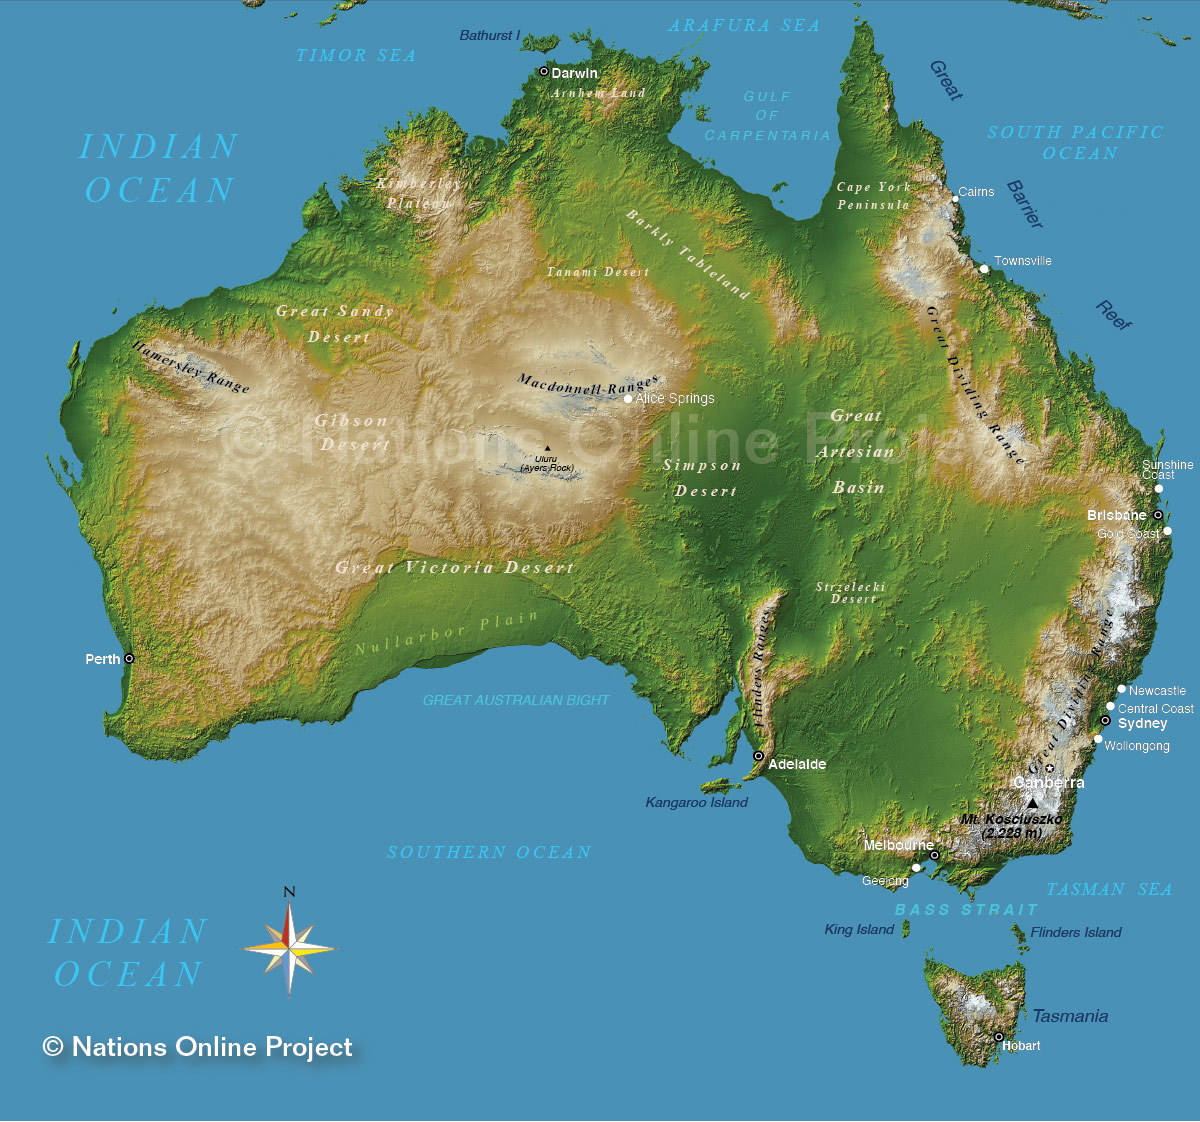 Topographic Map of Australia Nations Online Project – Map of Australlia